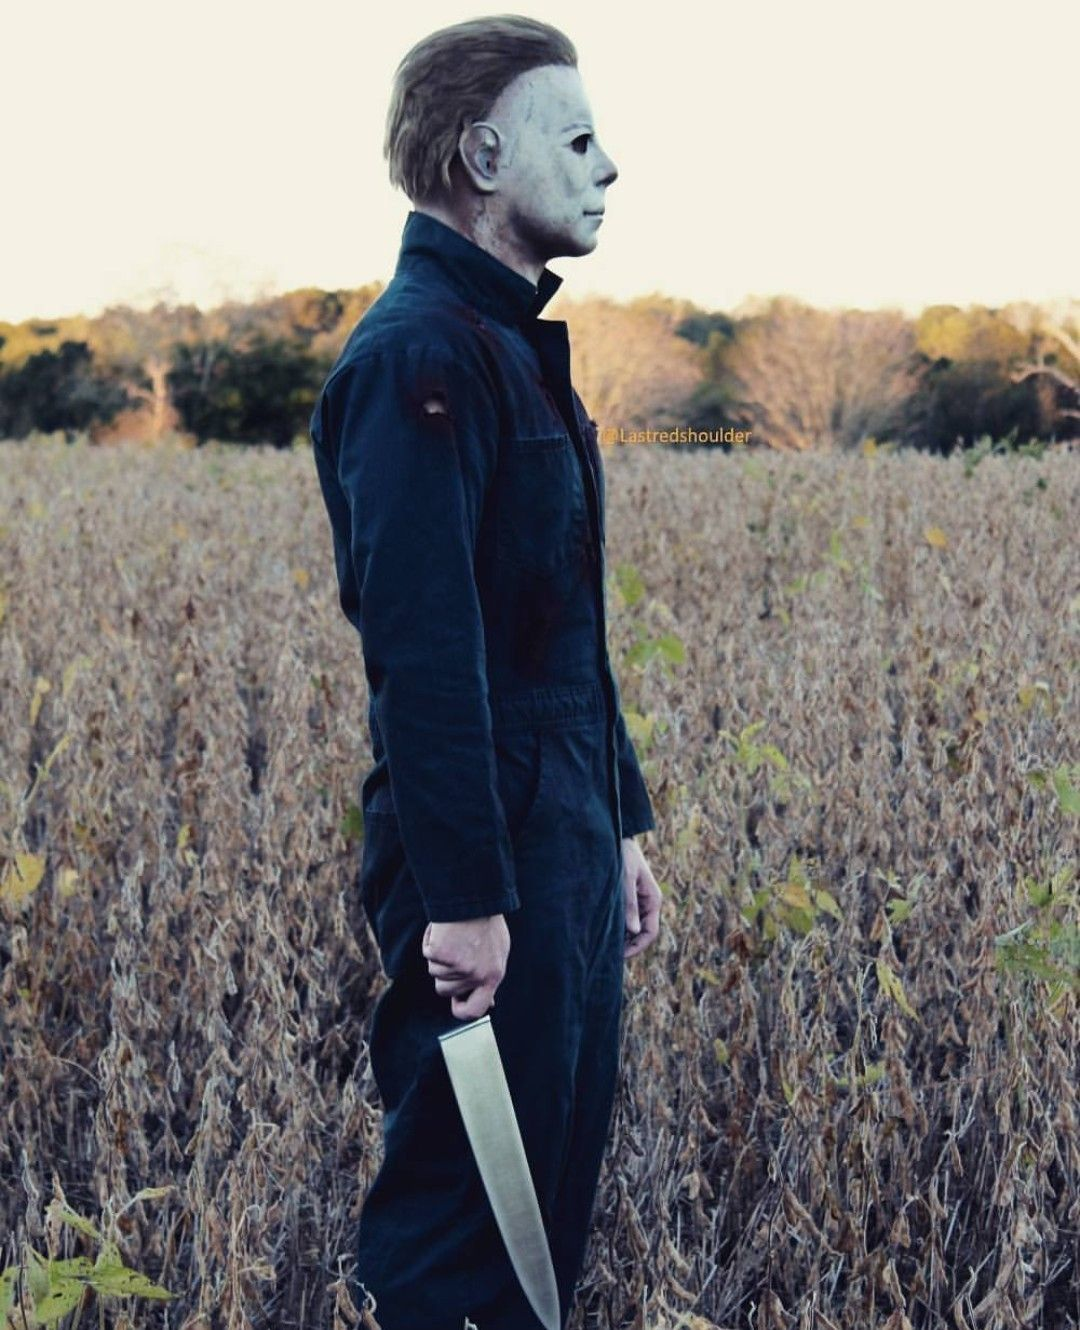 Michael Myers is WAITING for Halloween Night, to KILL!!